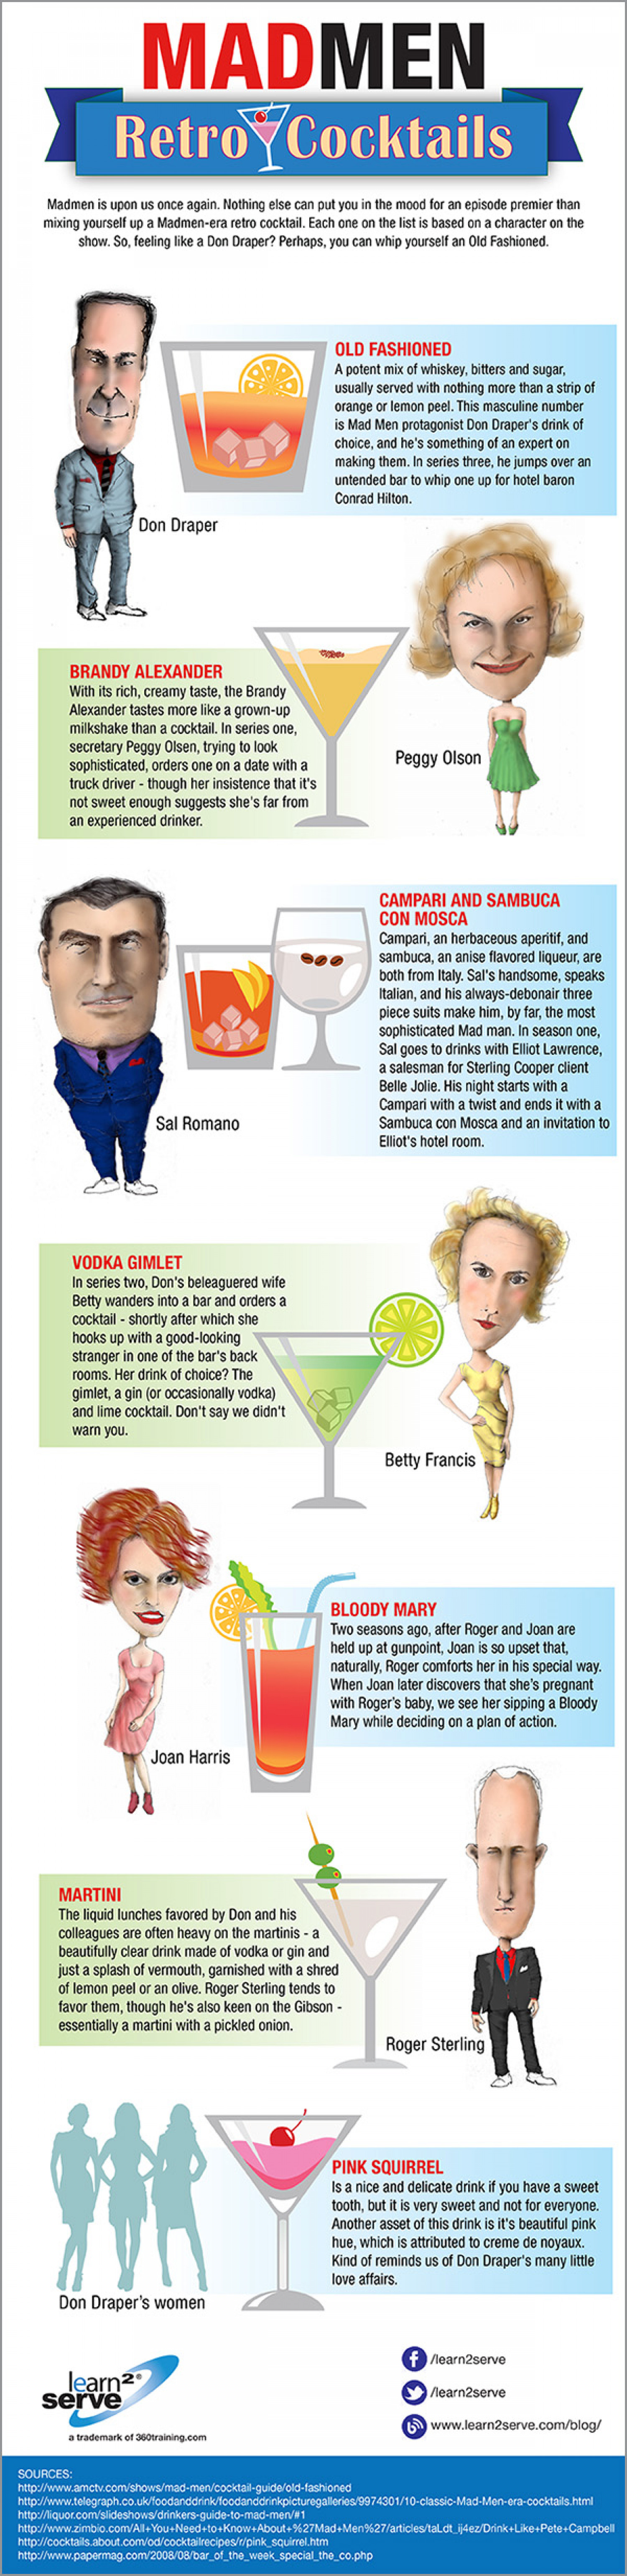 Mad Men Retro Cocktails Infographic